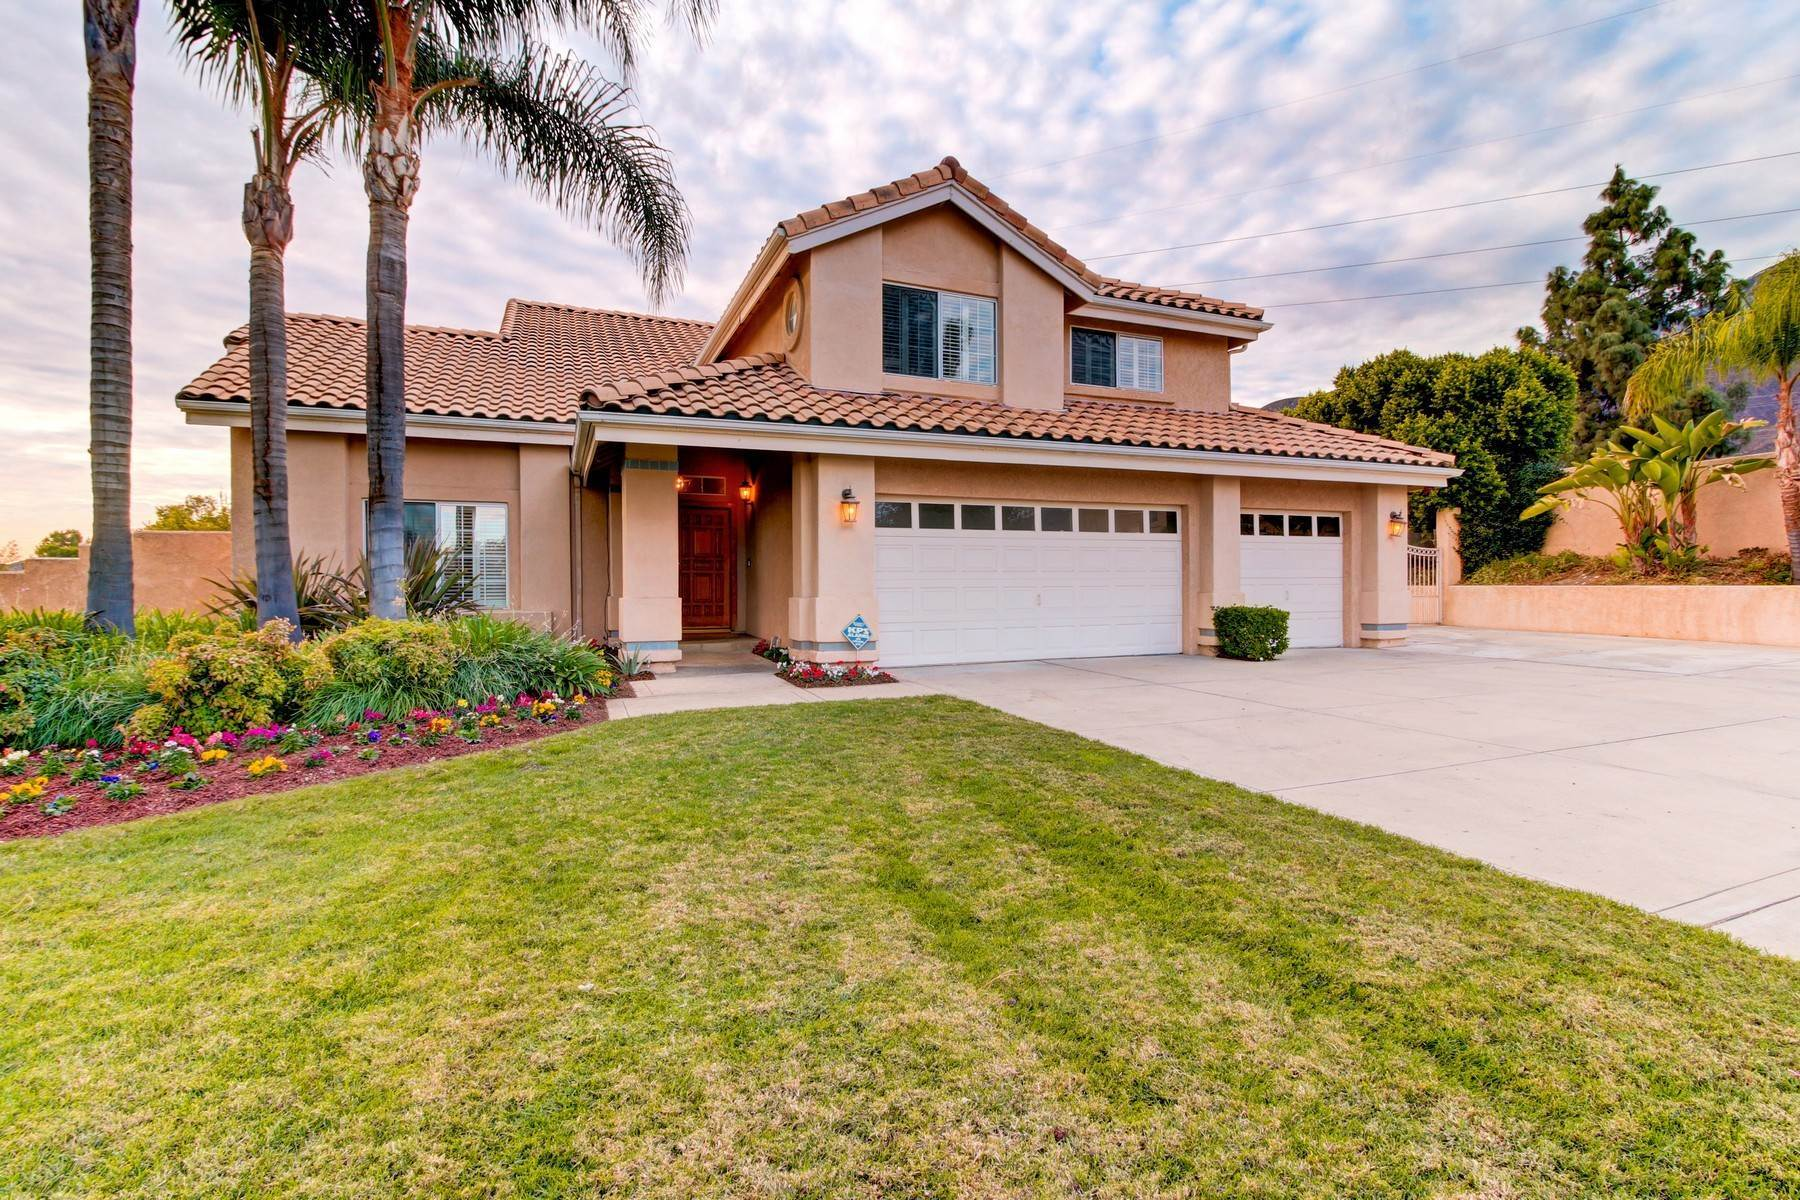 Single Family at 8171 Bella Vista Drive Rancho Cucamonga, California United States